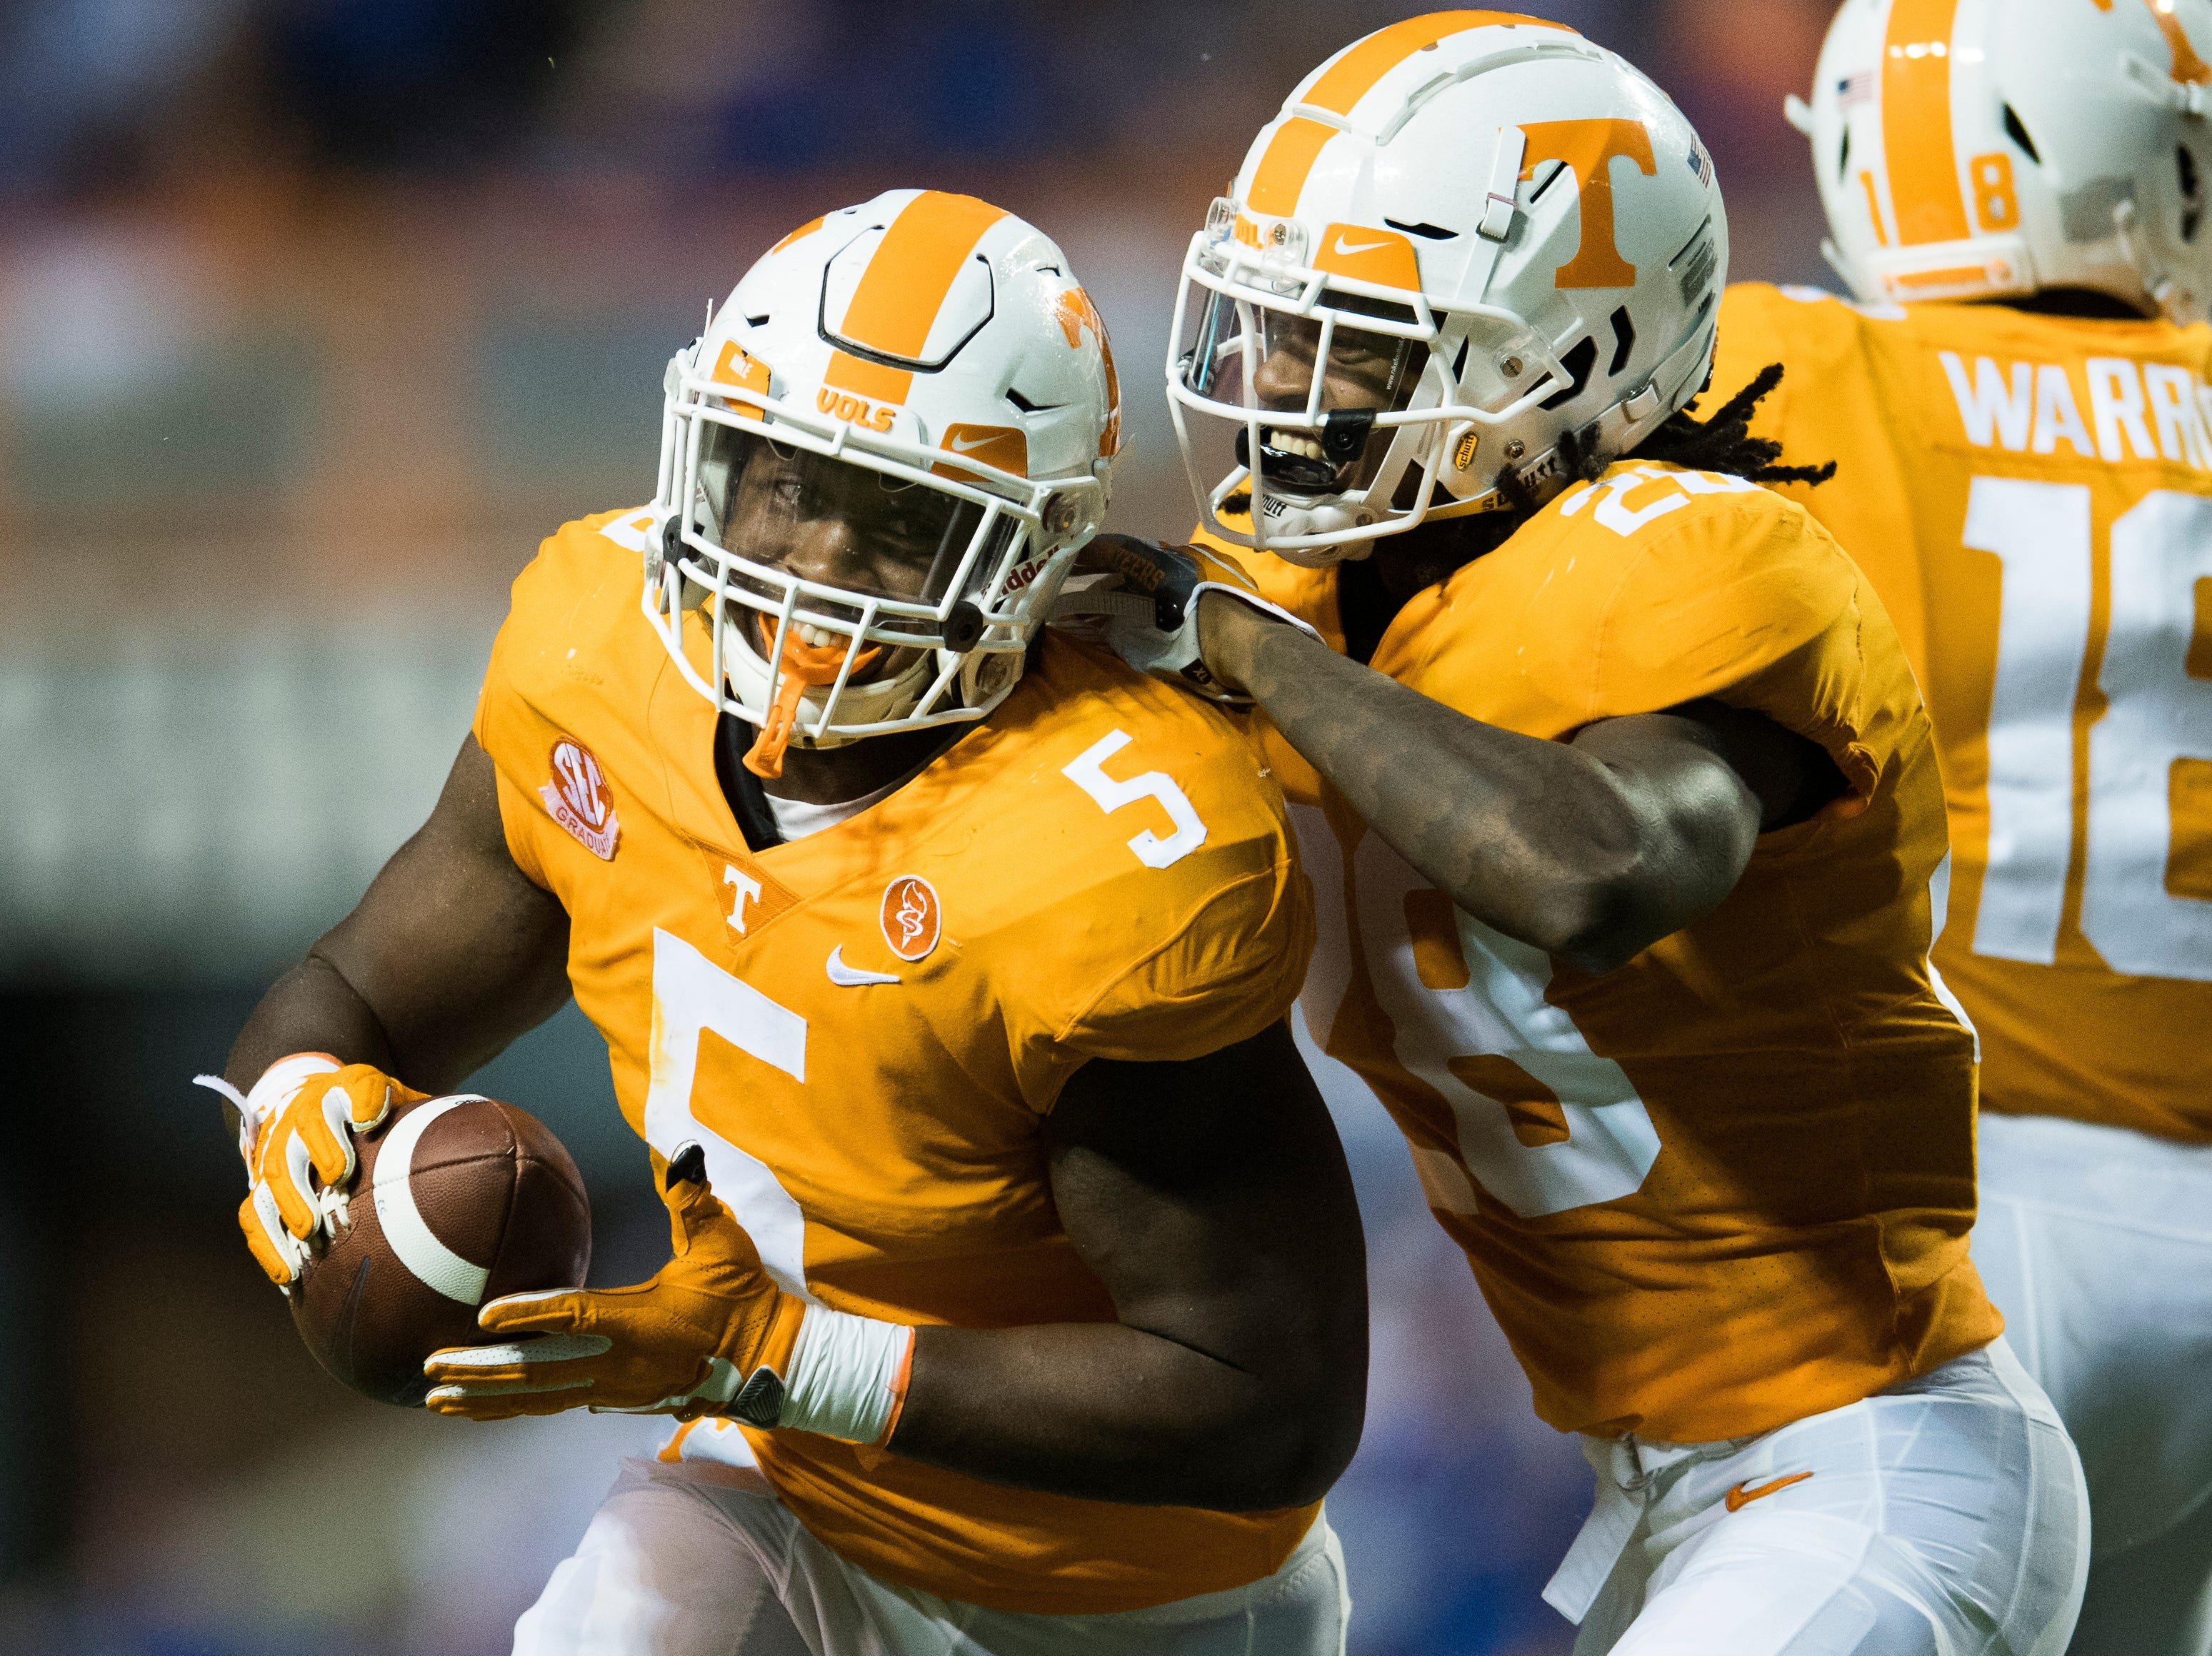 Tennessee defensive lineman Kyle Phillips (5) is congratulated by Tennessee defensive back Baylen Buchanan (28) after regaining possession of the ball during a game between Tennessee and Florida at Neyland Stadium in Knoxville, Tennessee on Saturday, September 22, 2018.